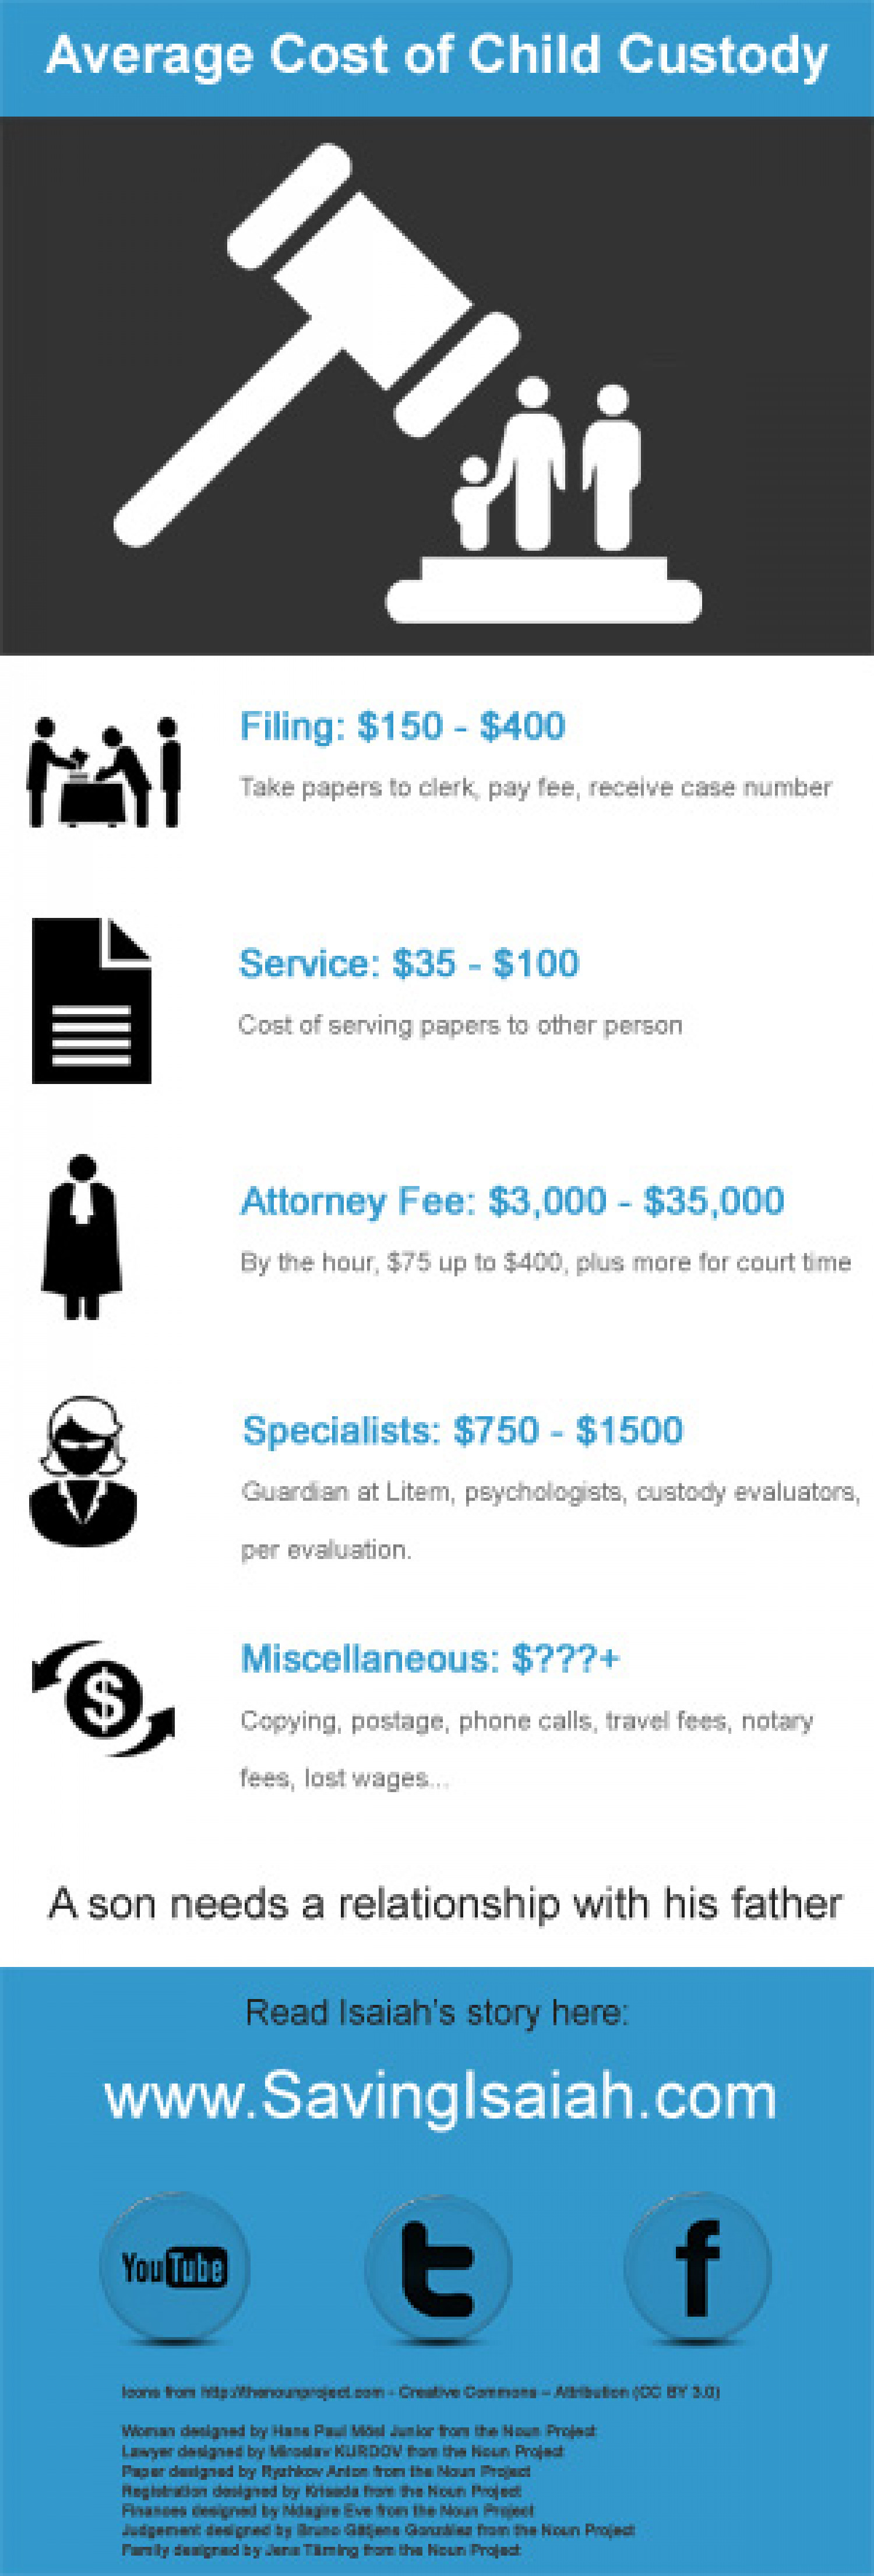 Average Cost of Child Custody Infographic